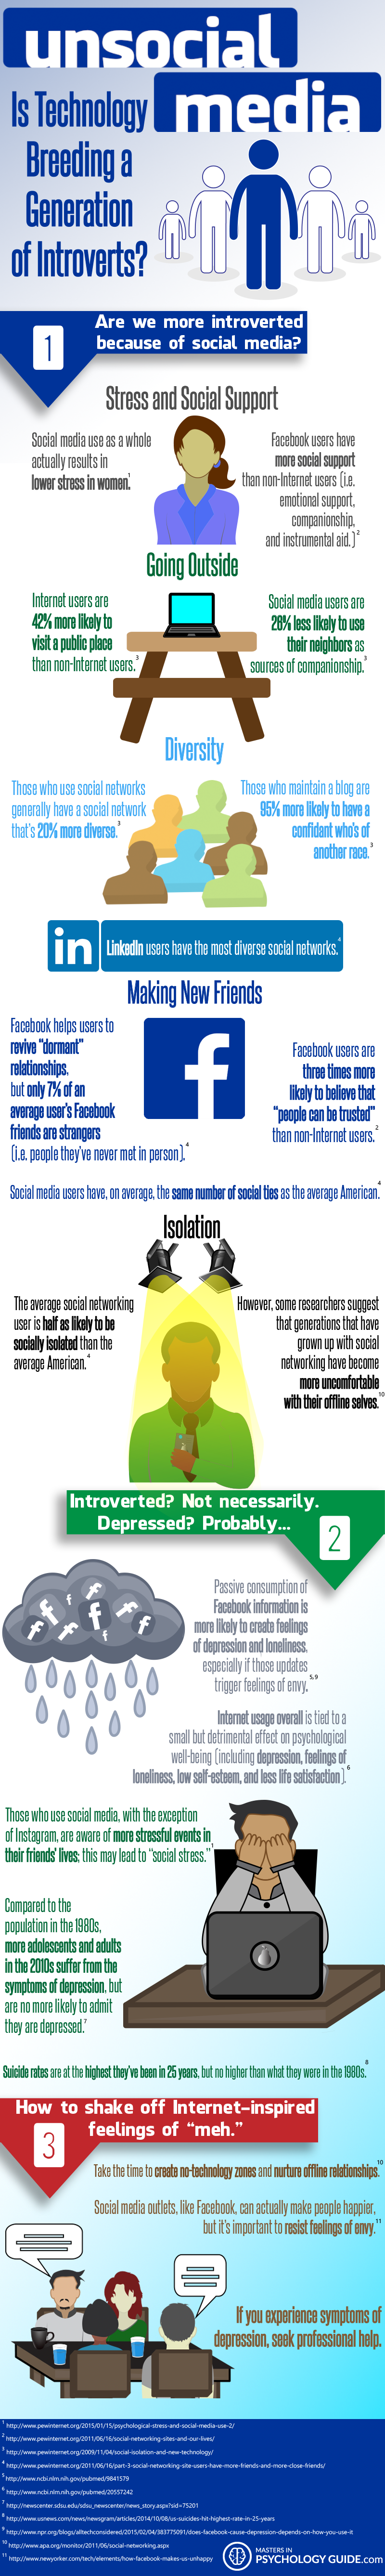 Unsocial Media: Is Technology Breeding Introverts?  - MastersinPsychologyGuide.com - Infographic